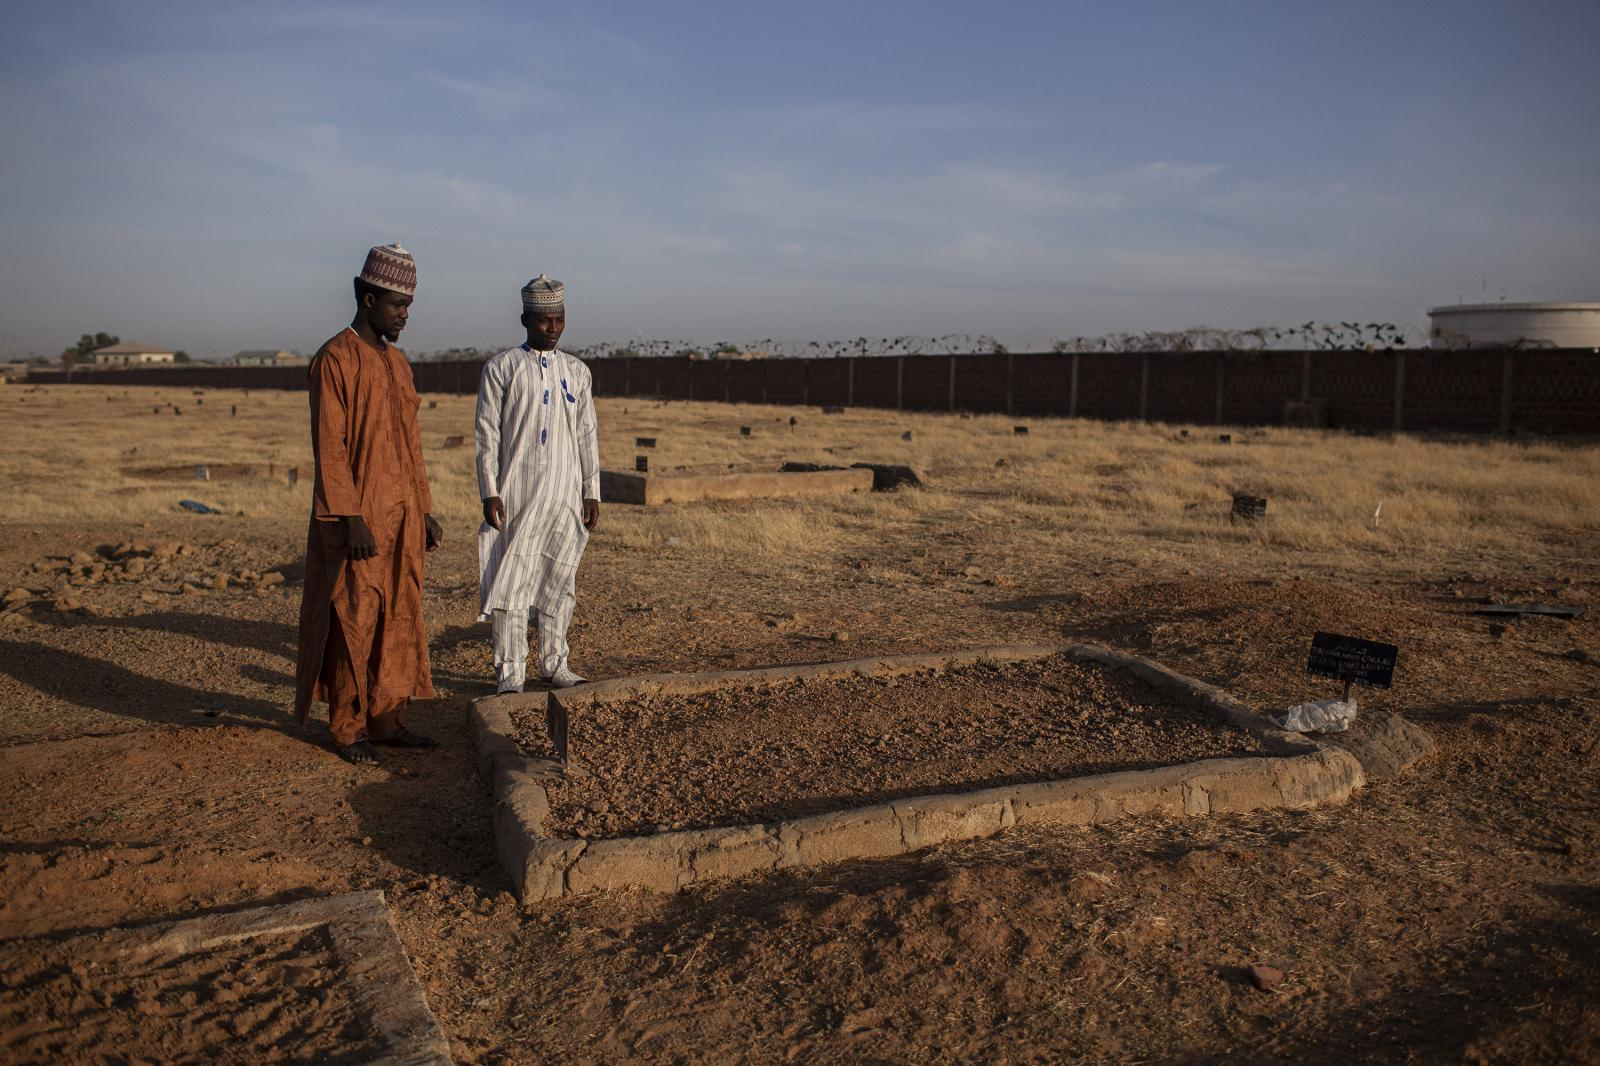 Relatives of a dead vaccinator killed by Boko Haram visit his tomb. Kano, Nigeria 2014.Boko Haram tried to stop Nigeria from eliminating polio. They failed. Inaccessible areas occupied by the ISIS-linked sect, have prevented the vaccination of as many as 66,000 children in the northern state of Borno. Diego Ibarra Sánchez